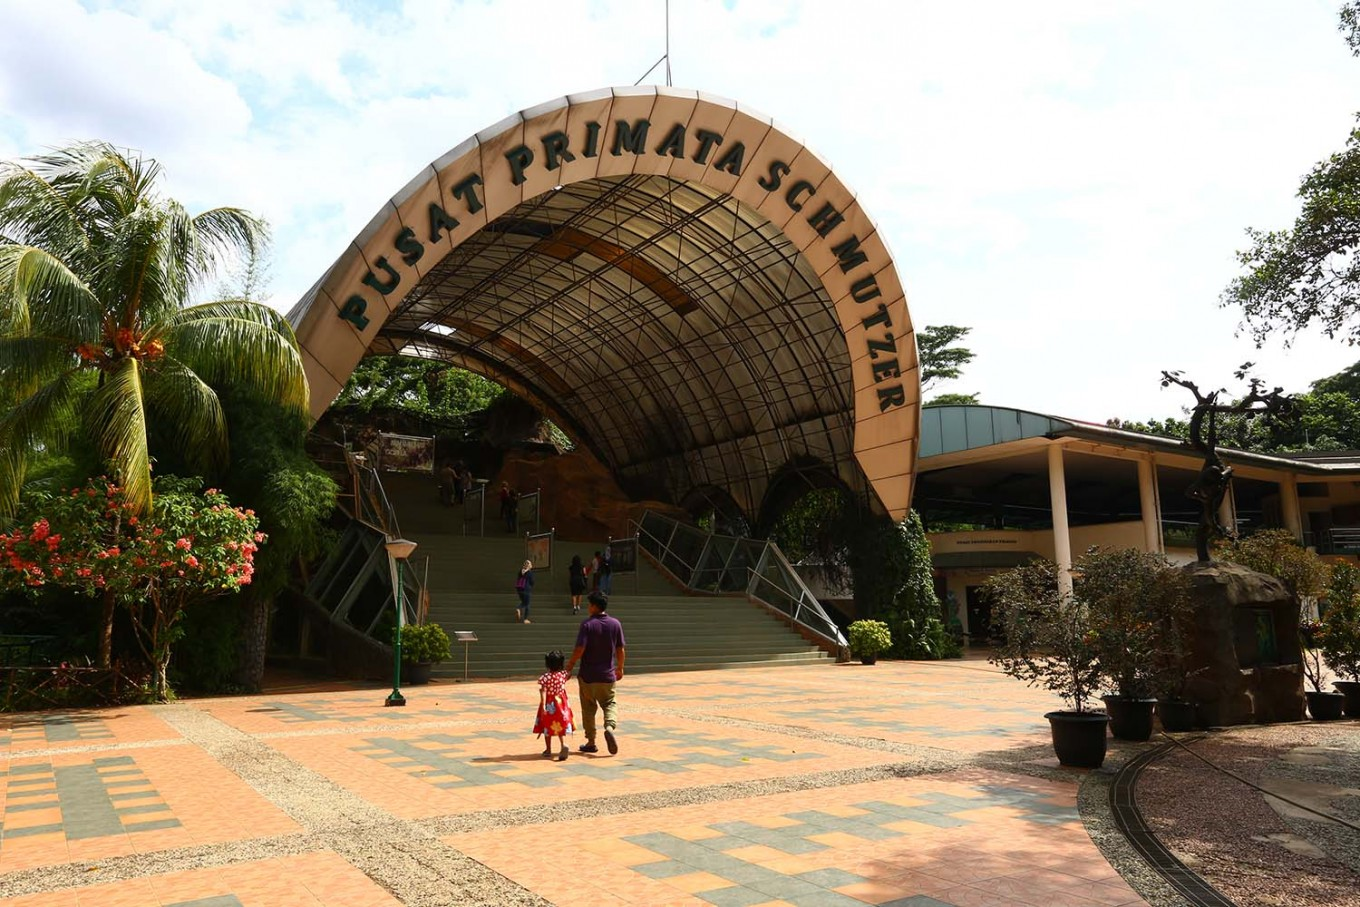 Ragunan Zoo to close on first day of Idul Fitri